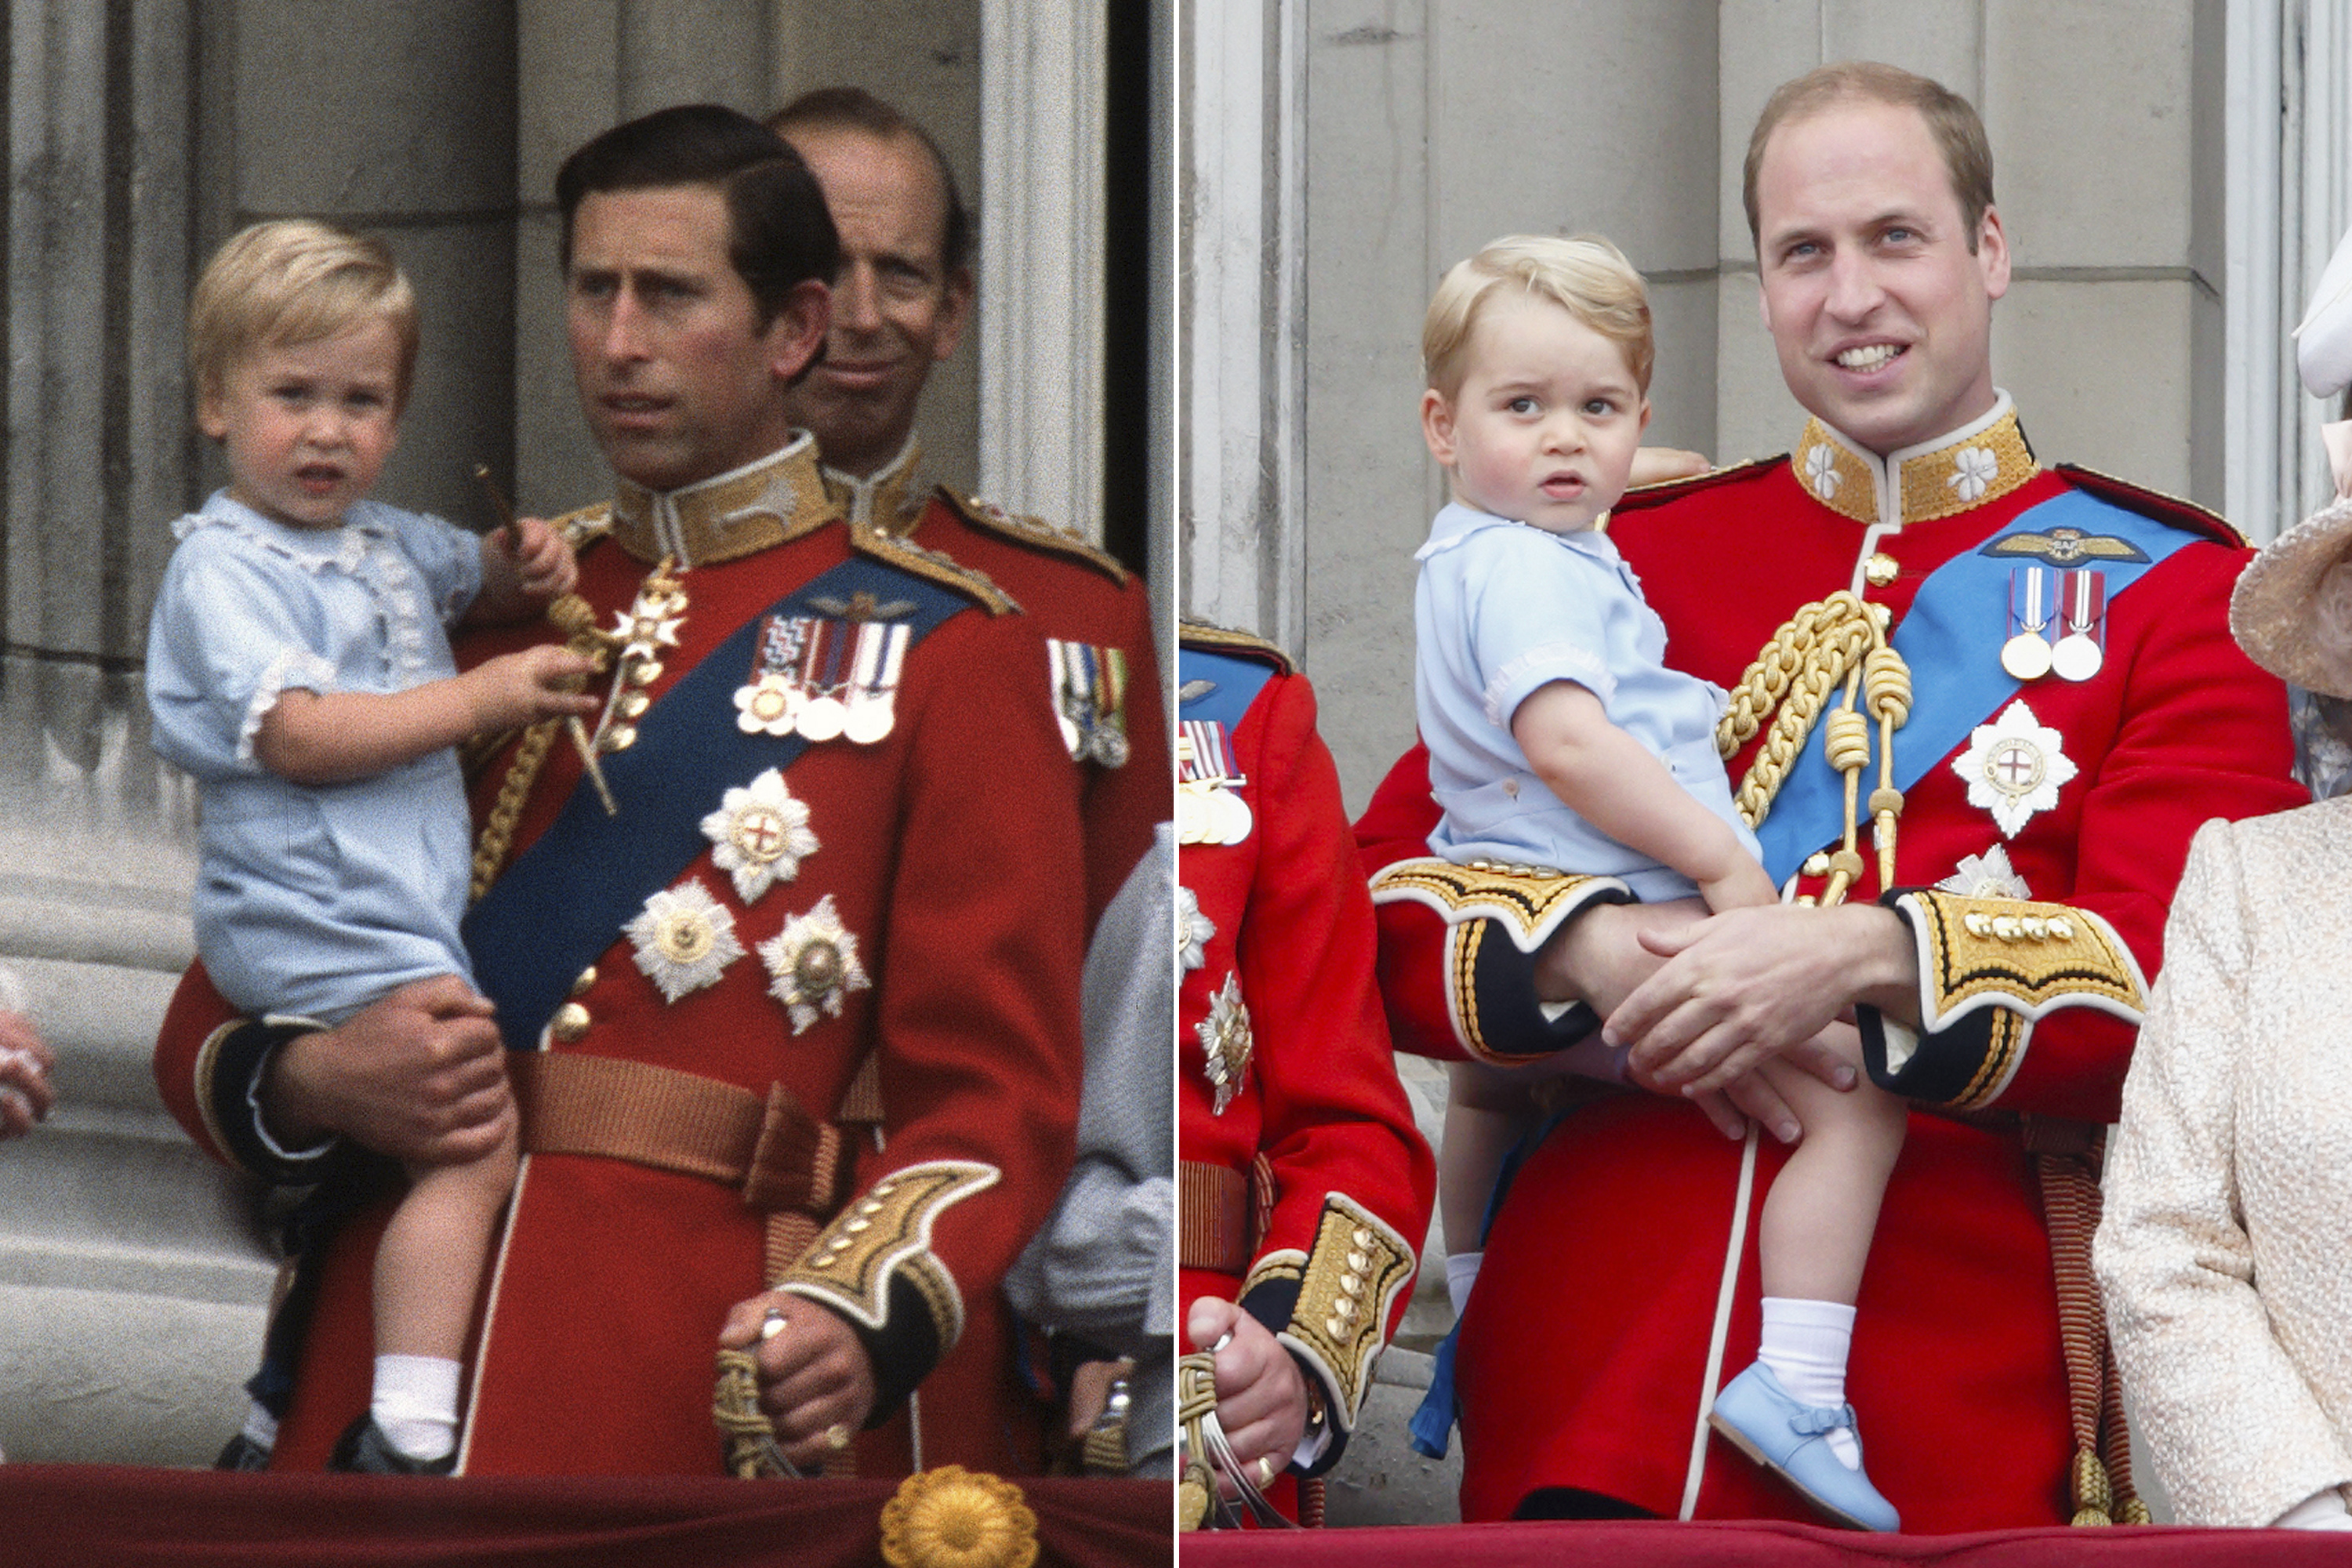 Left: Prince Charles holds Prince William on the balcony of Buckingham Palace following the Trooping the Colour ceremony in London, June 16, 1984. Right: Prince William holds Prince George on the balcony of Buckingham Palace following the Trooping the Colour ceremony in London, June 13, 2015.